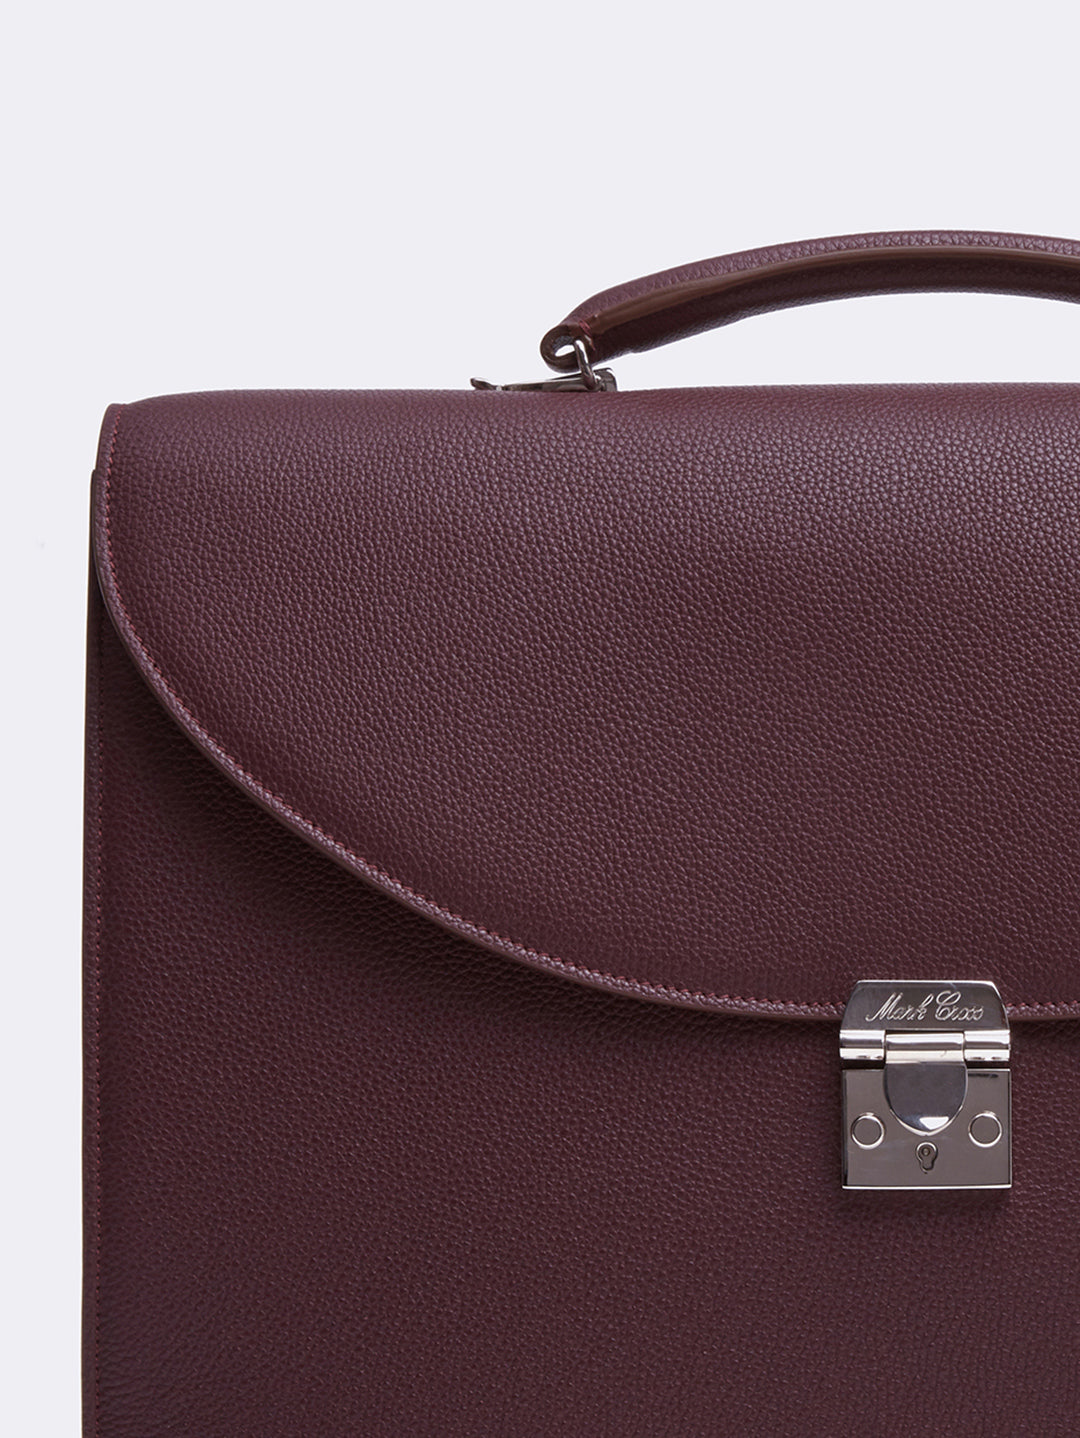 Mark Cross Maddox Leather Briefcase Tumbled Grain Bordeaux Detail